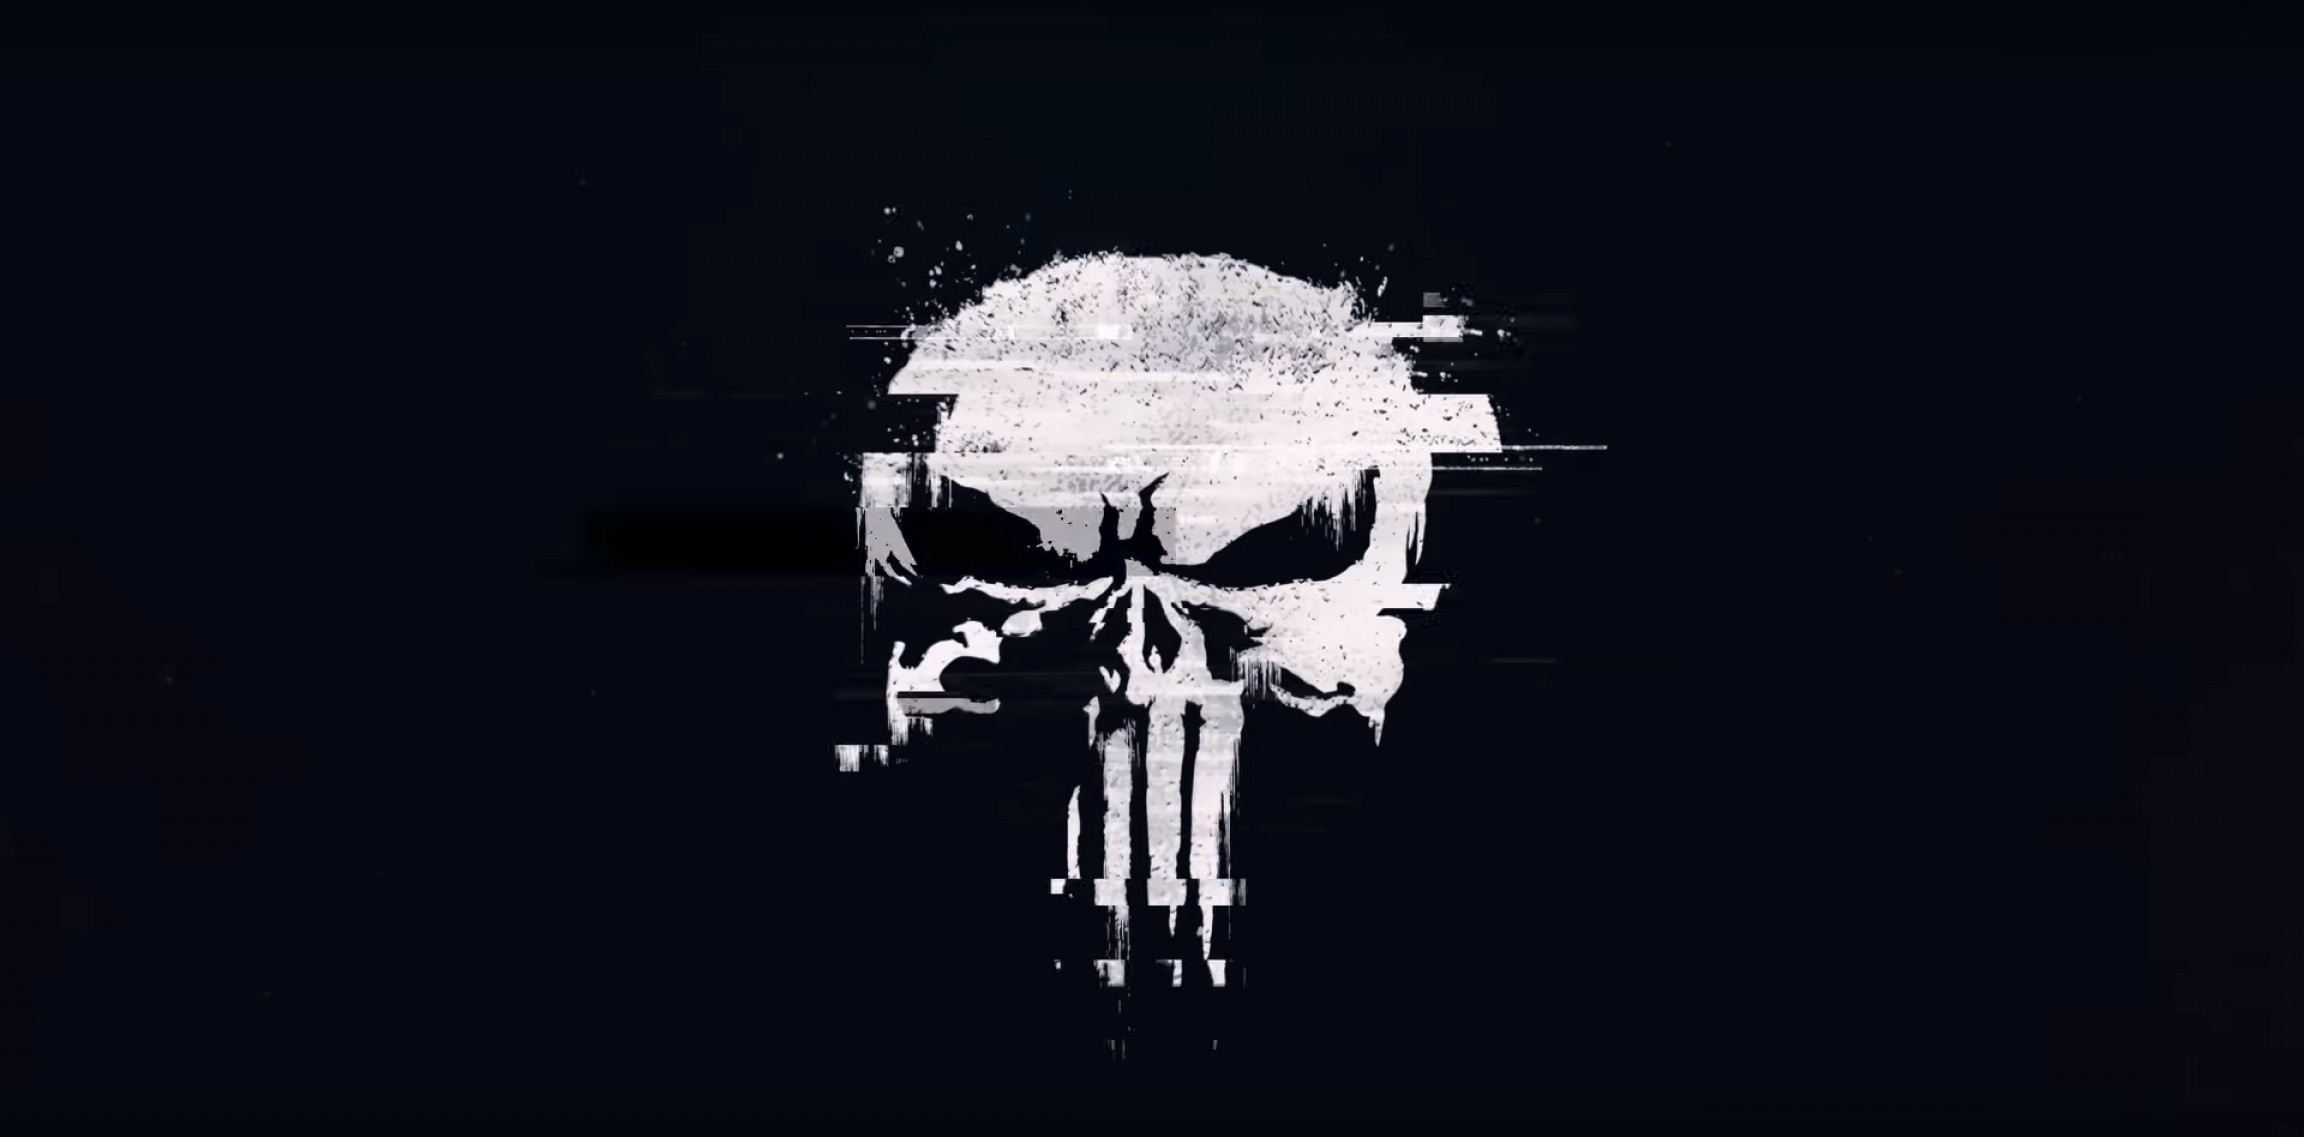 Marvel Netflix Punisher Skull Meaning Cops Soldiers.